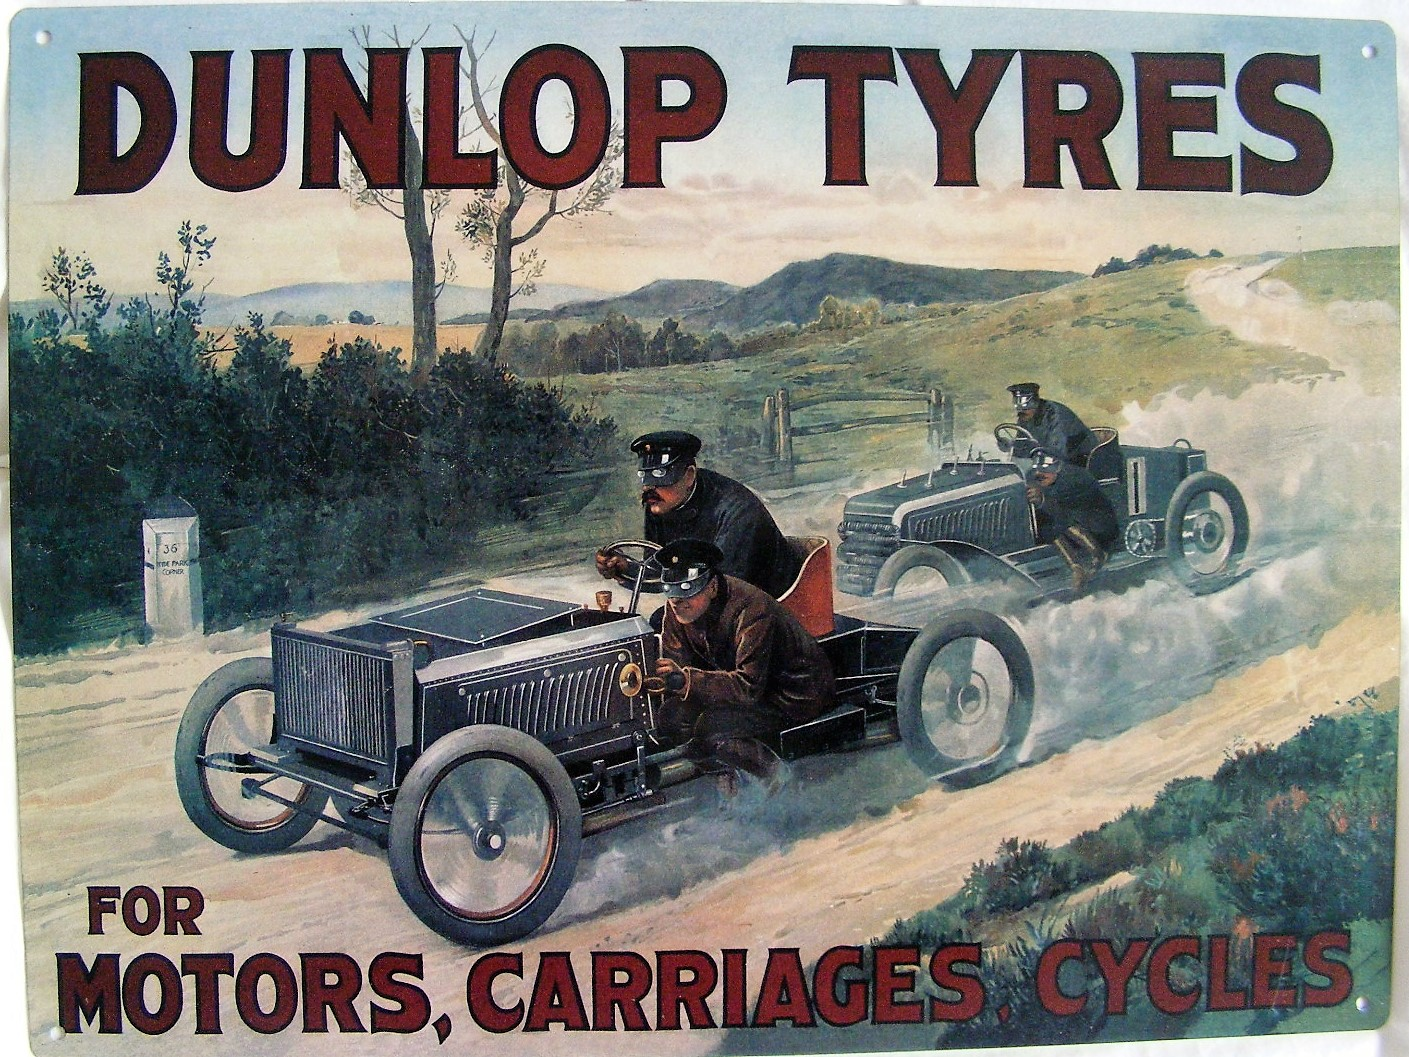 Dunlop Tyres Robert Opie A3 steel sign